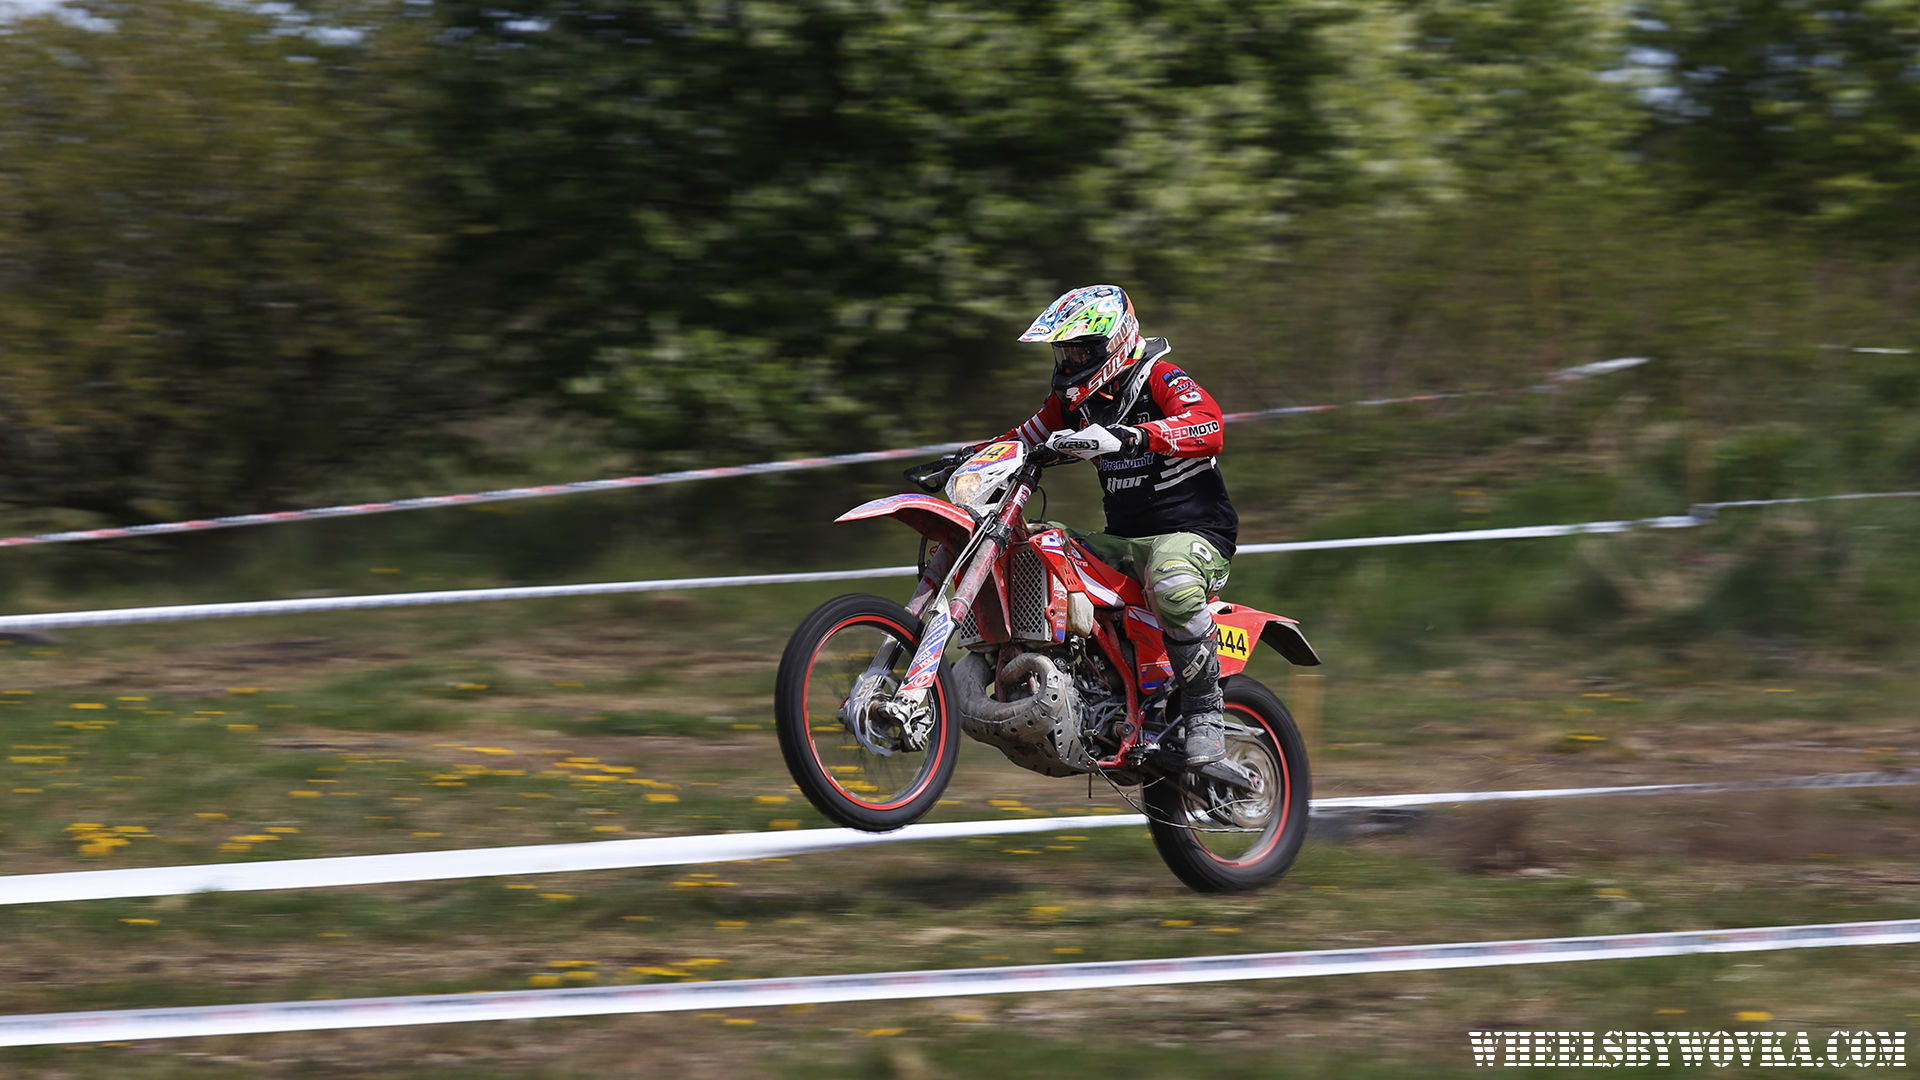 enduro-tallinn-estonia-gp-by-wheelsbywovka-17